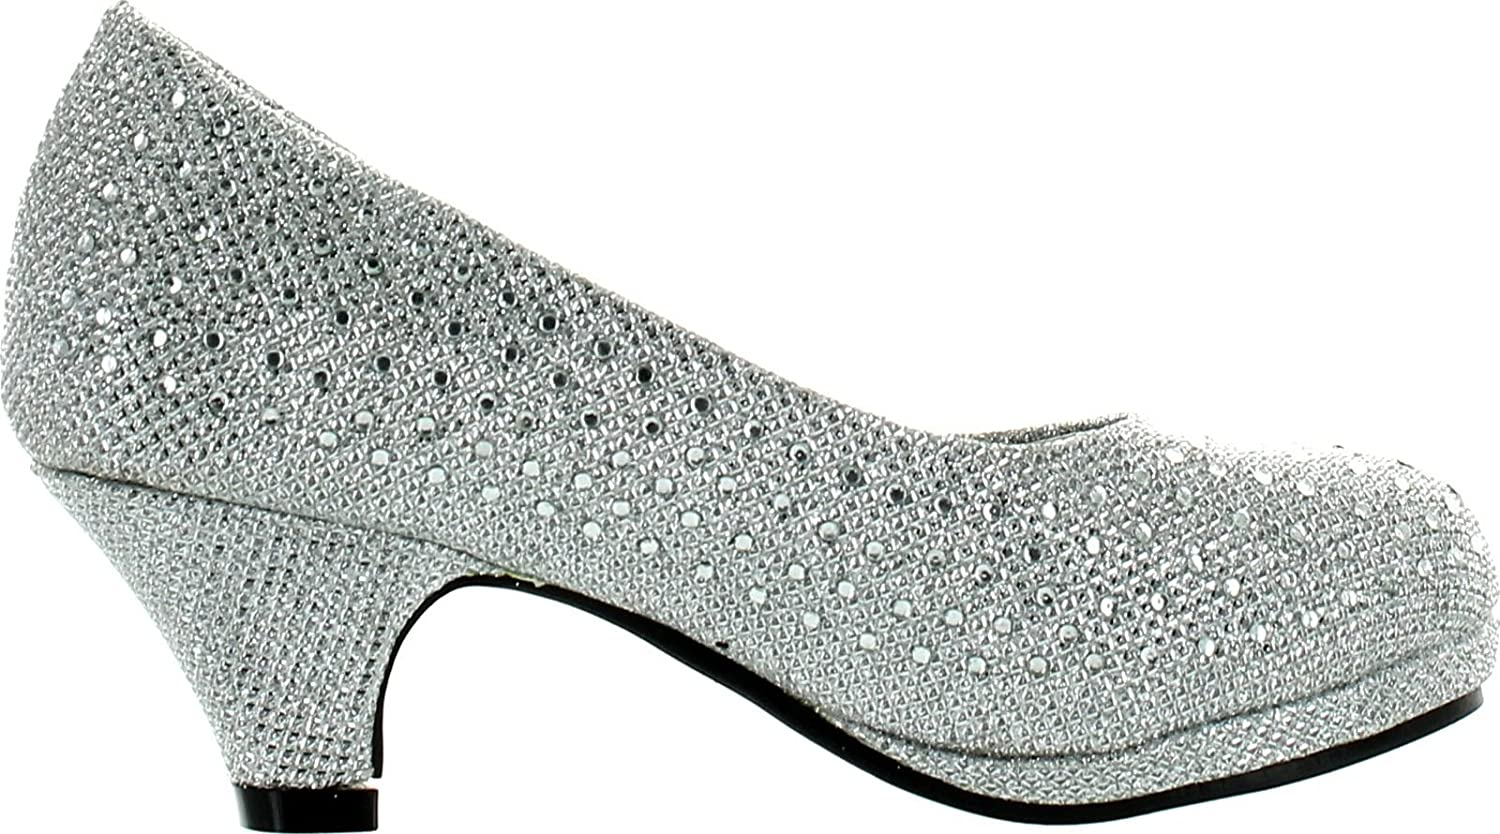 KP 101 K Little Girls Rhinestone Heel Platform Dress Pumps Silver